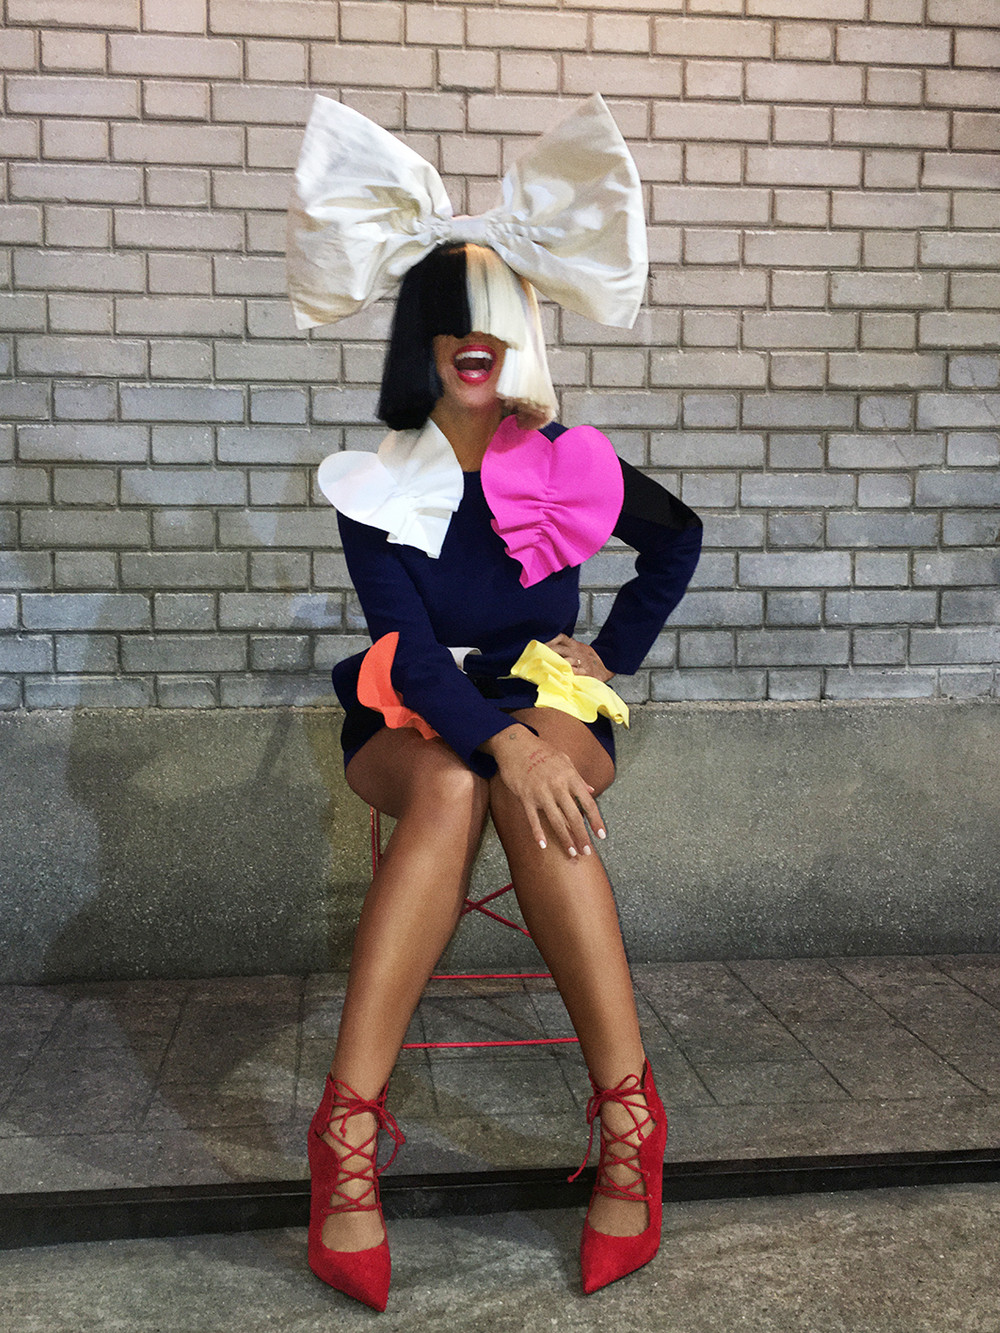 A photo of Sia